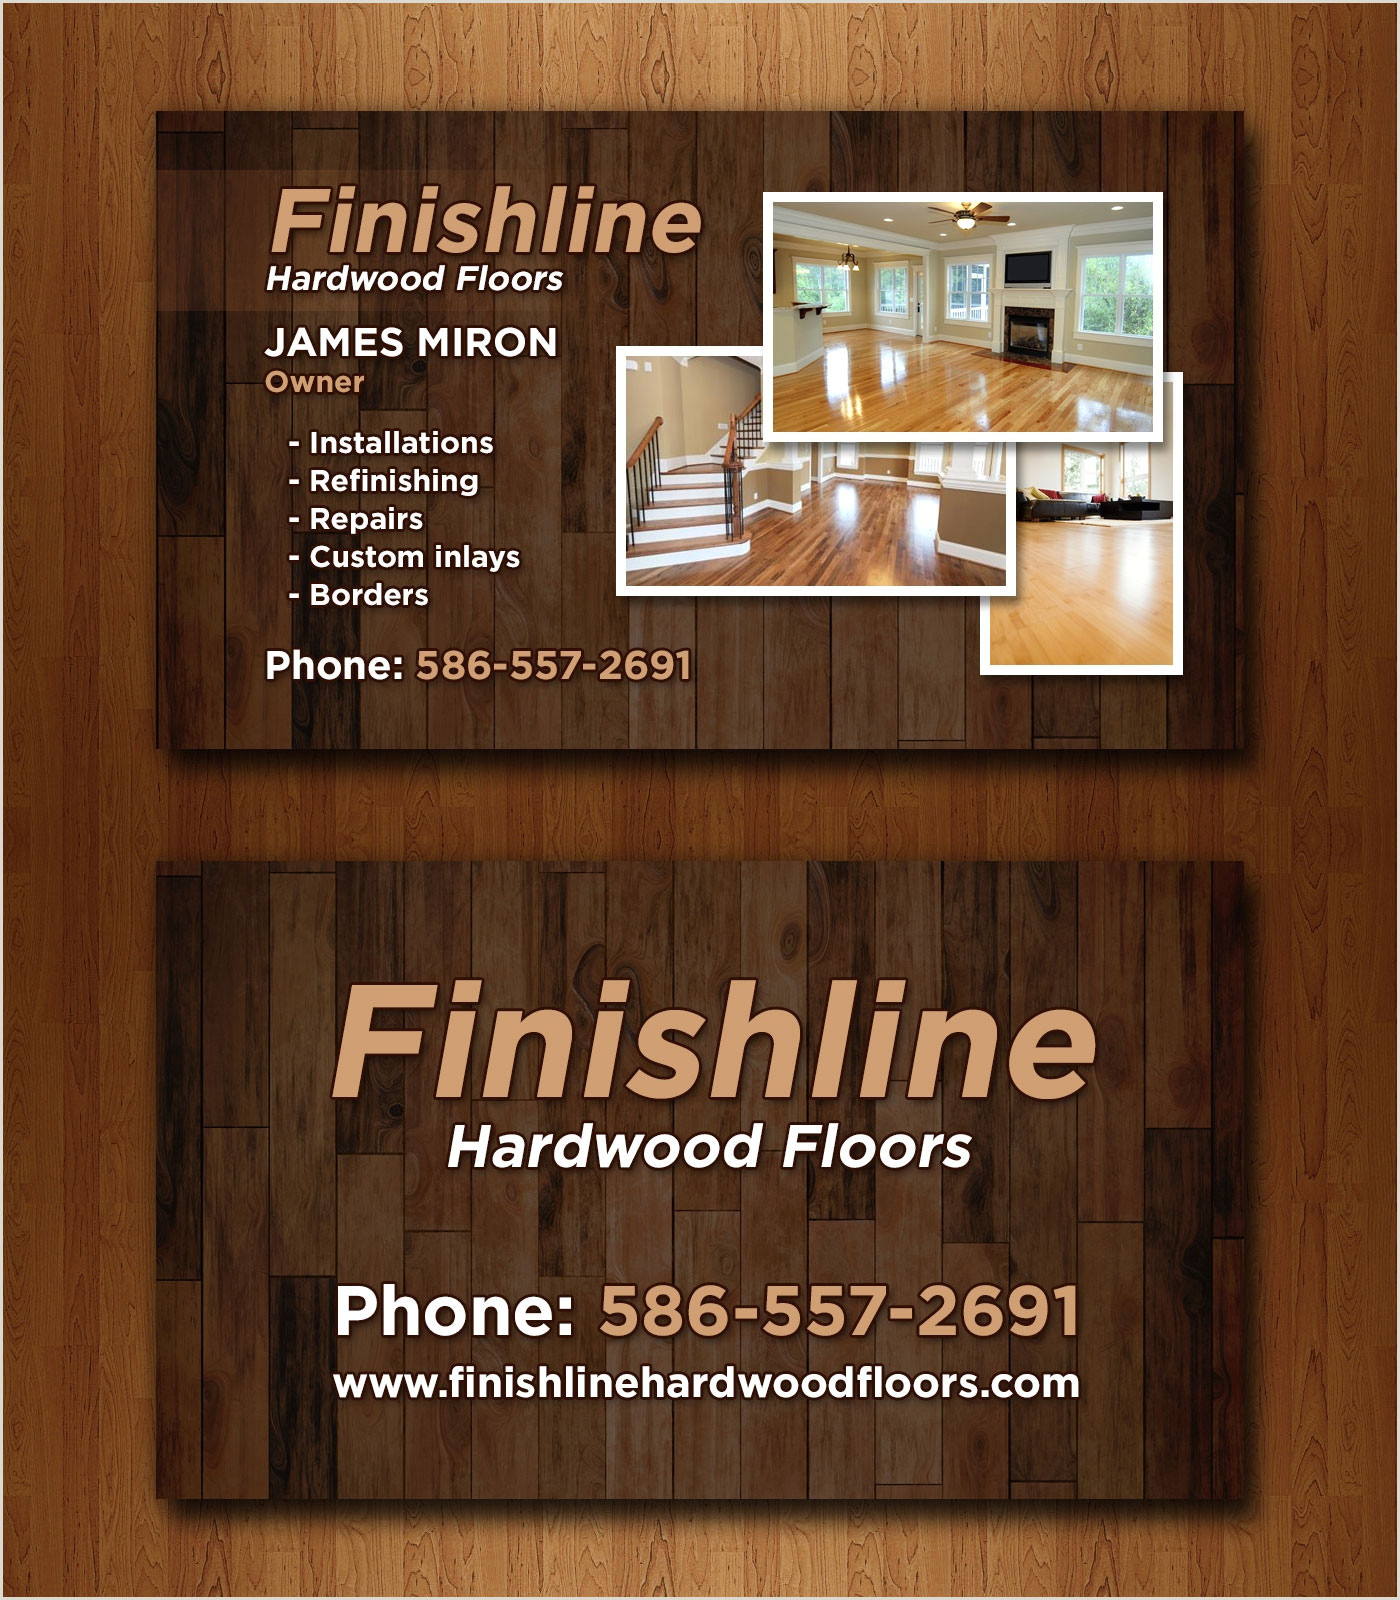 How To Make The Most Unique Business Cards 14 Popular Hardwood Flooring Business Card Template